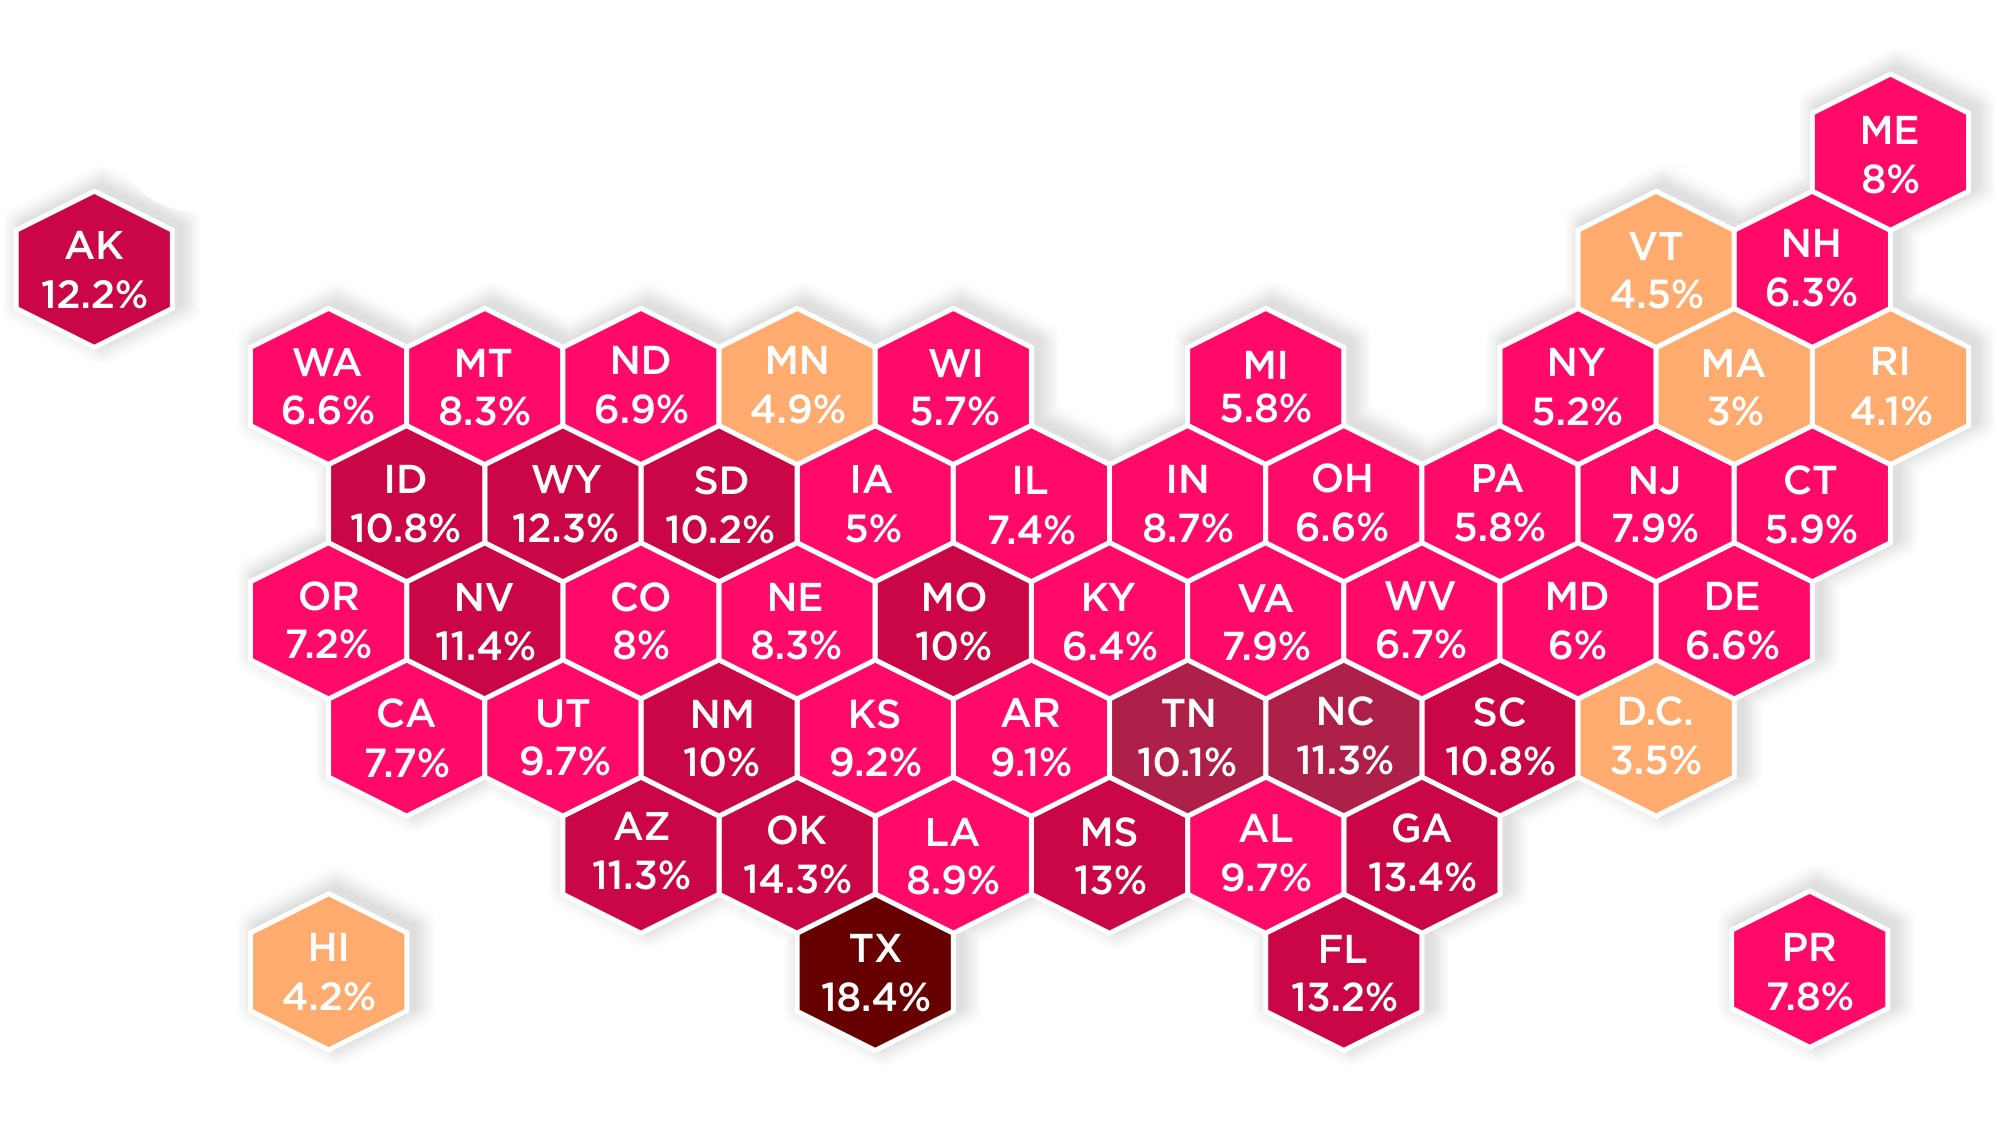 Mapped: Uninsured Rates by State